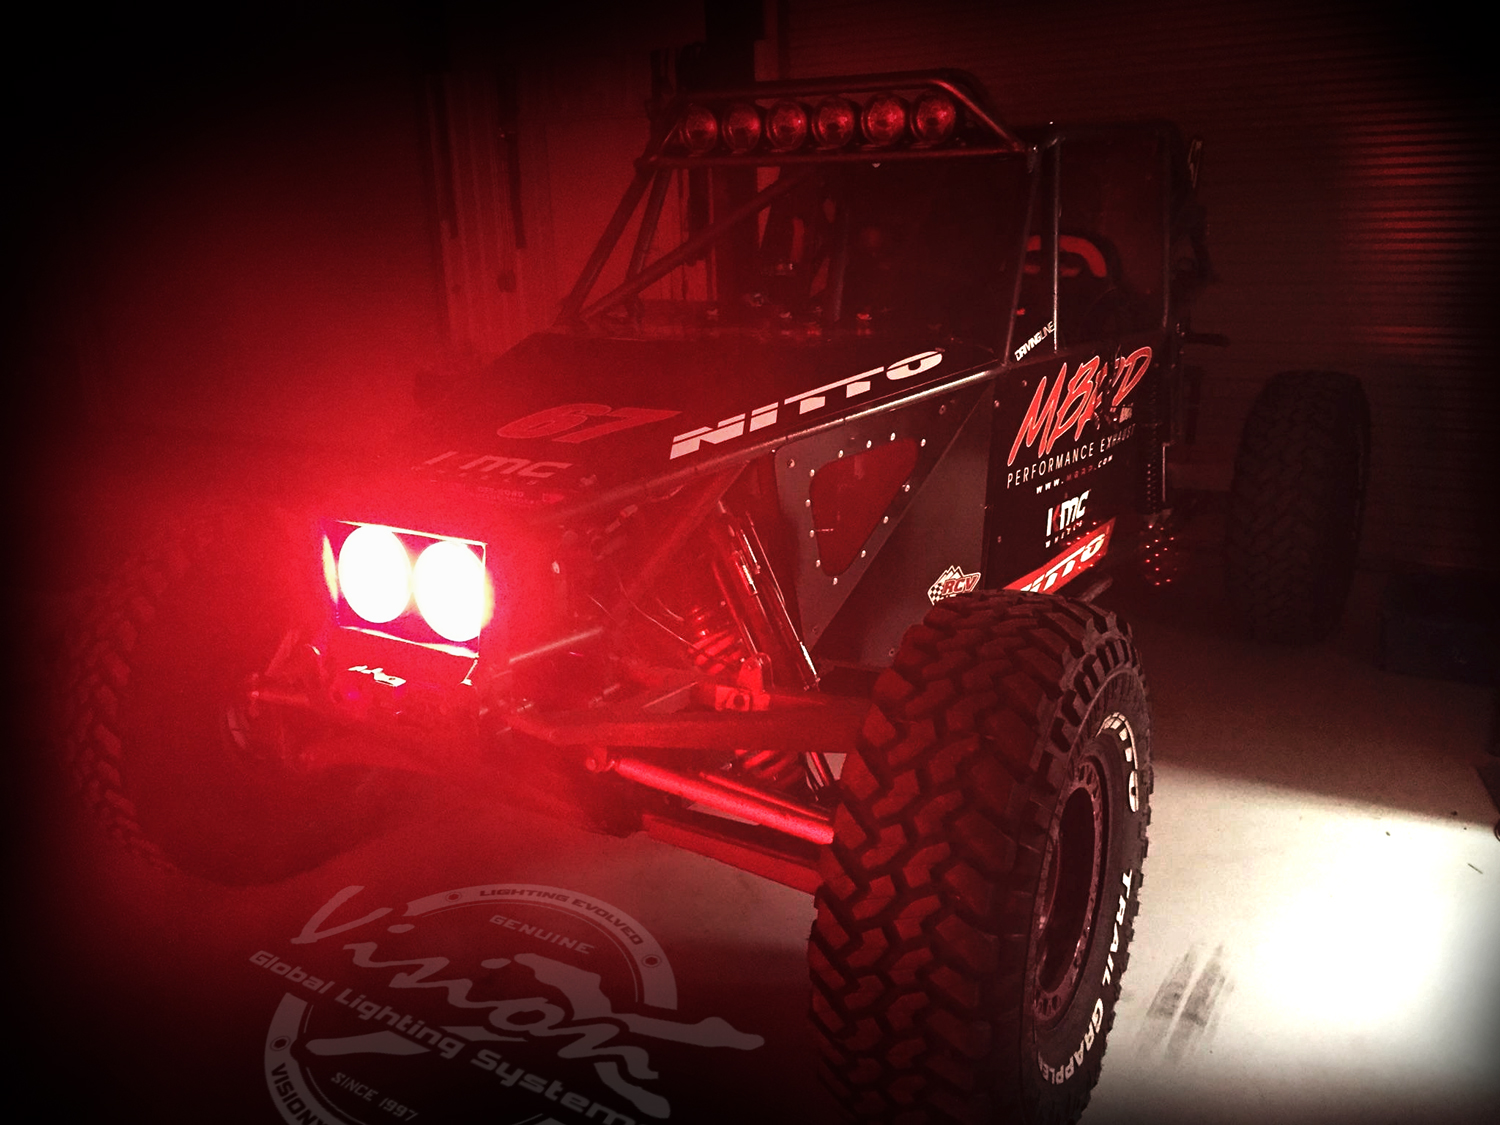 Next Stop Meet Loren Healy at the Nitto King of the Hammers during week long activities which kick-off in Johnson Valley CA on February 3rd  includes the ... & Two-Time King of the Hammers Winner Loren Healy Joins Vision X ... azcodes.com